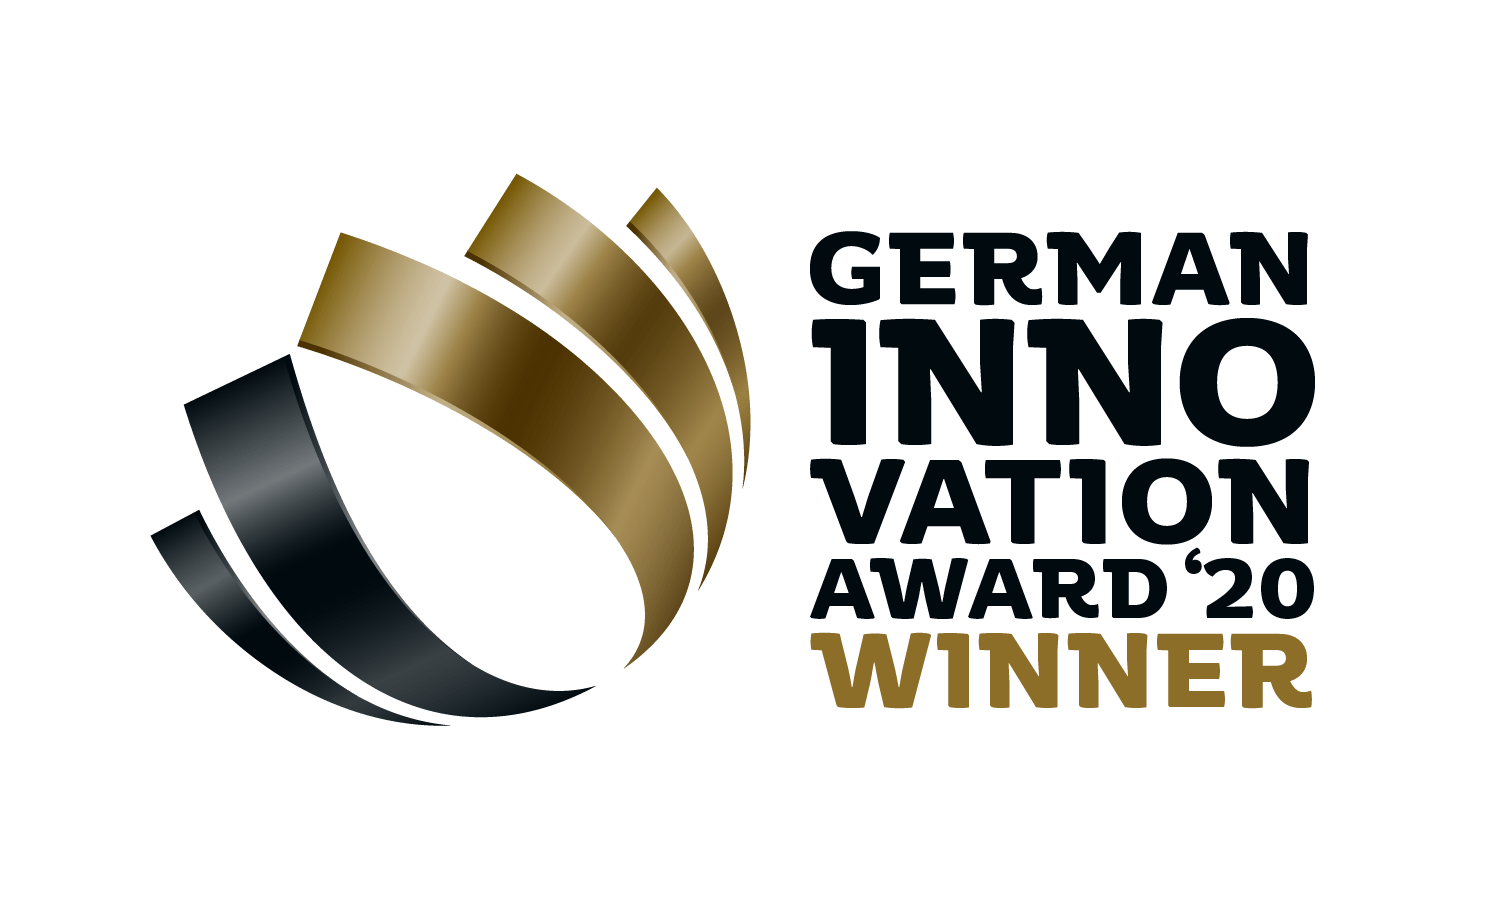 Gewinnerlogo des German Innovation Award 2020